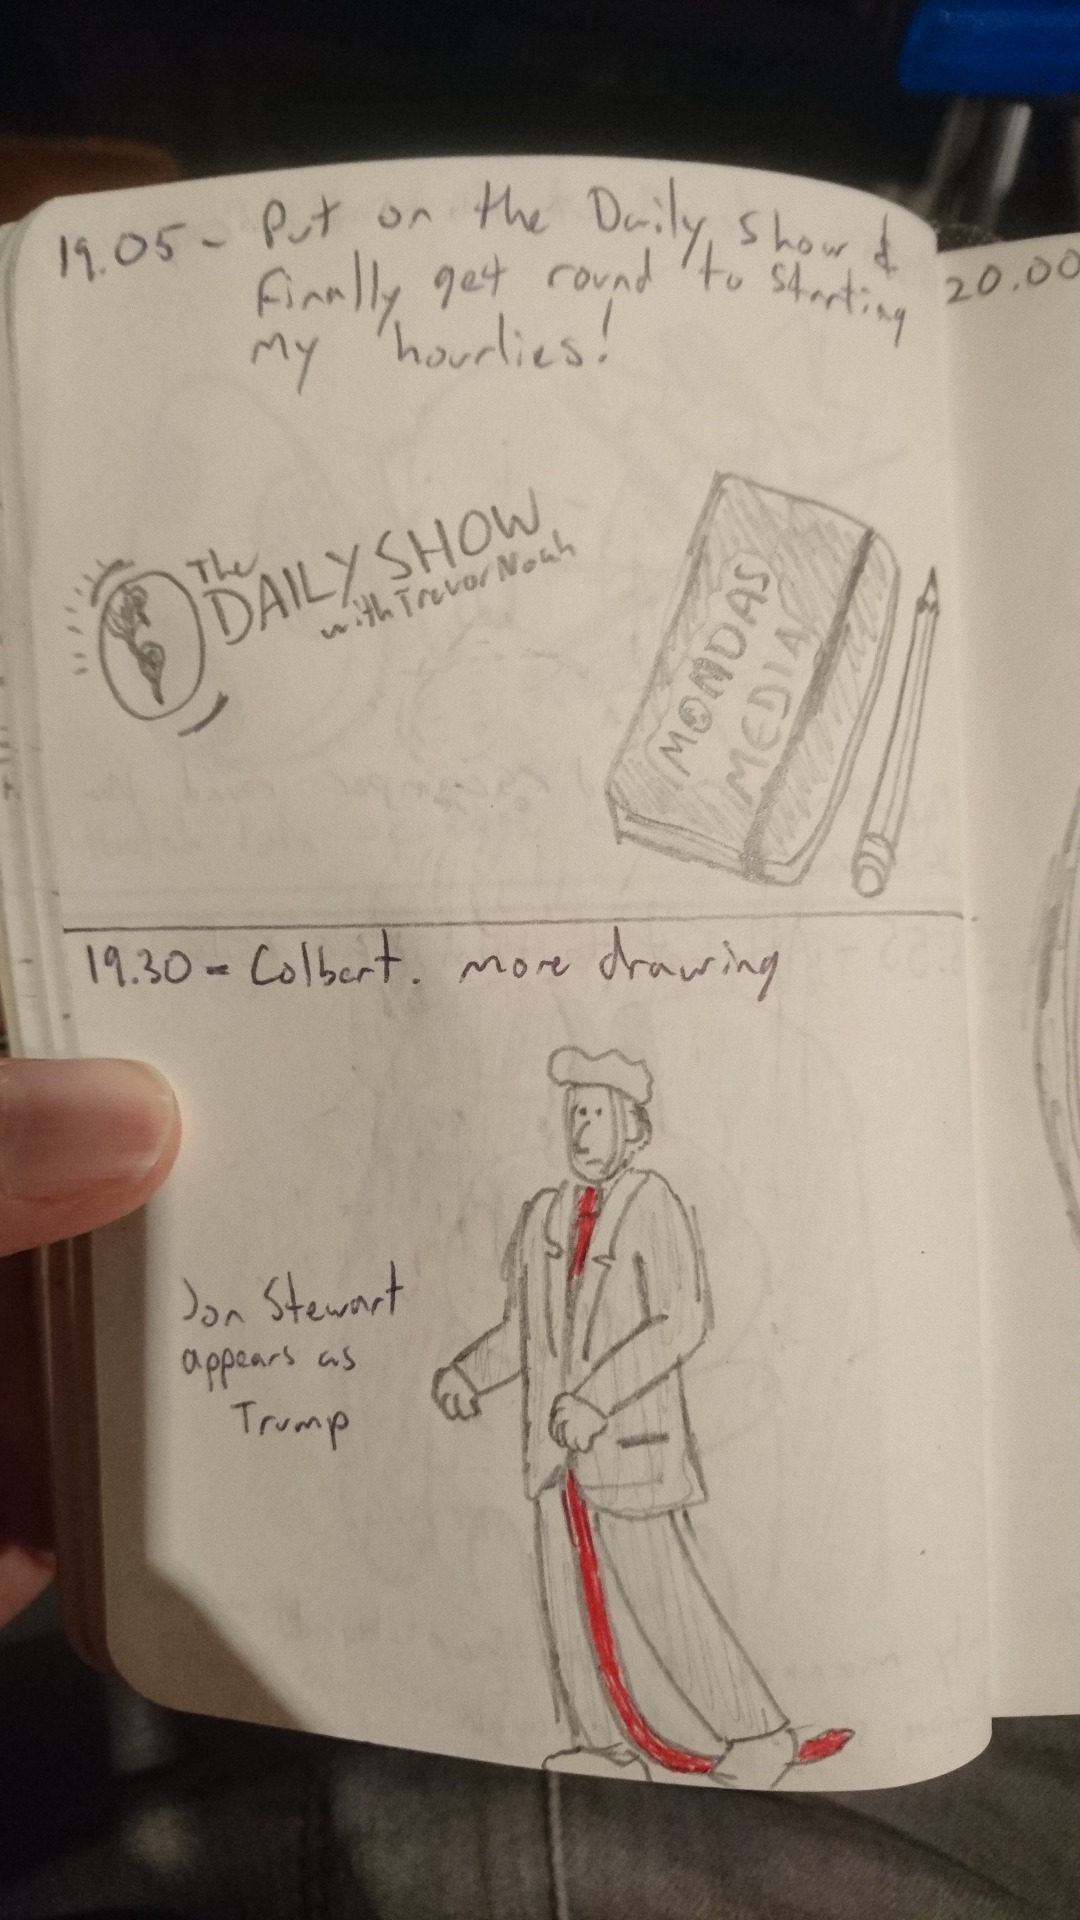 19:05:  Put on the Daily Show and finally get around to starting my hourlies!  19:30:  Colbert. More drawing. Jon Stewart appears as Trump.